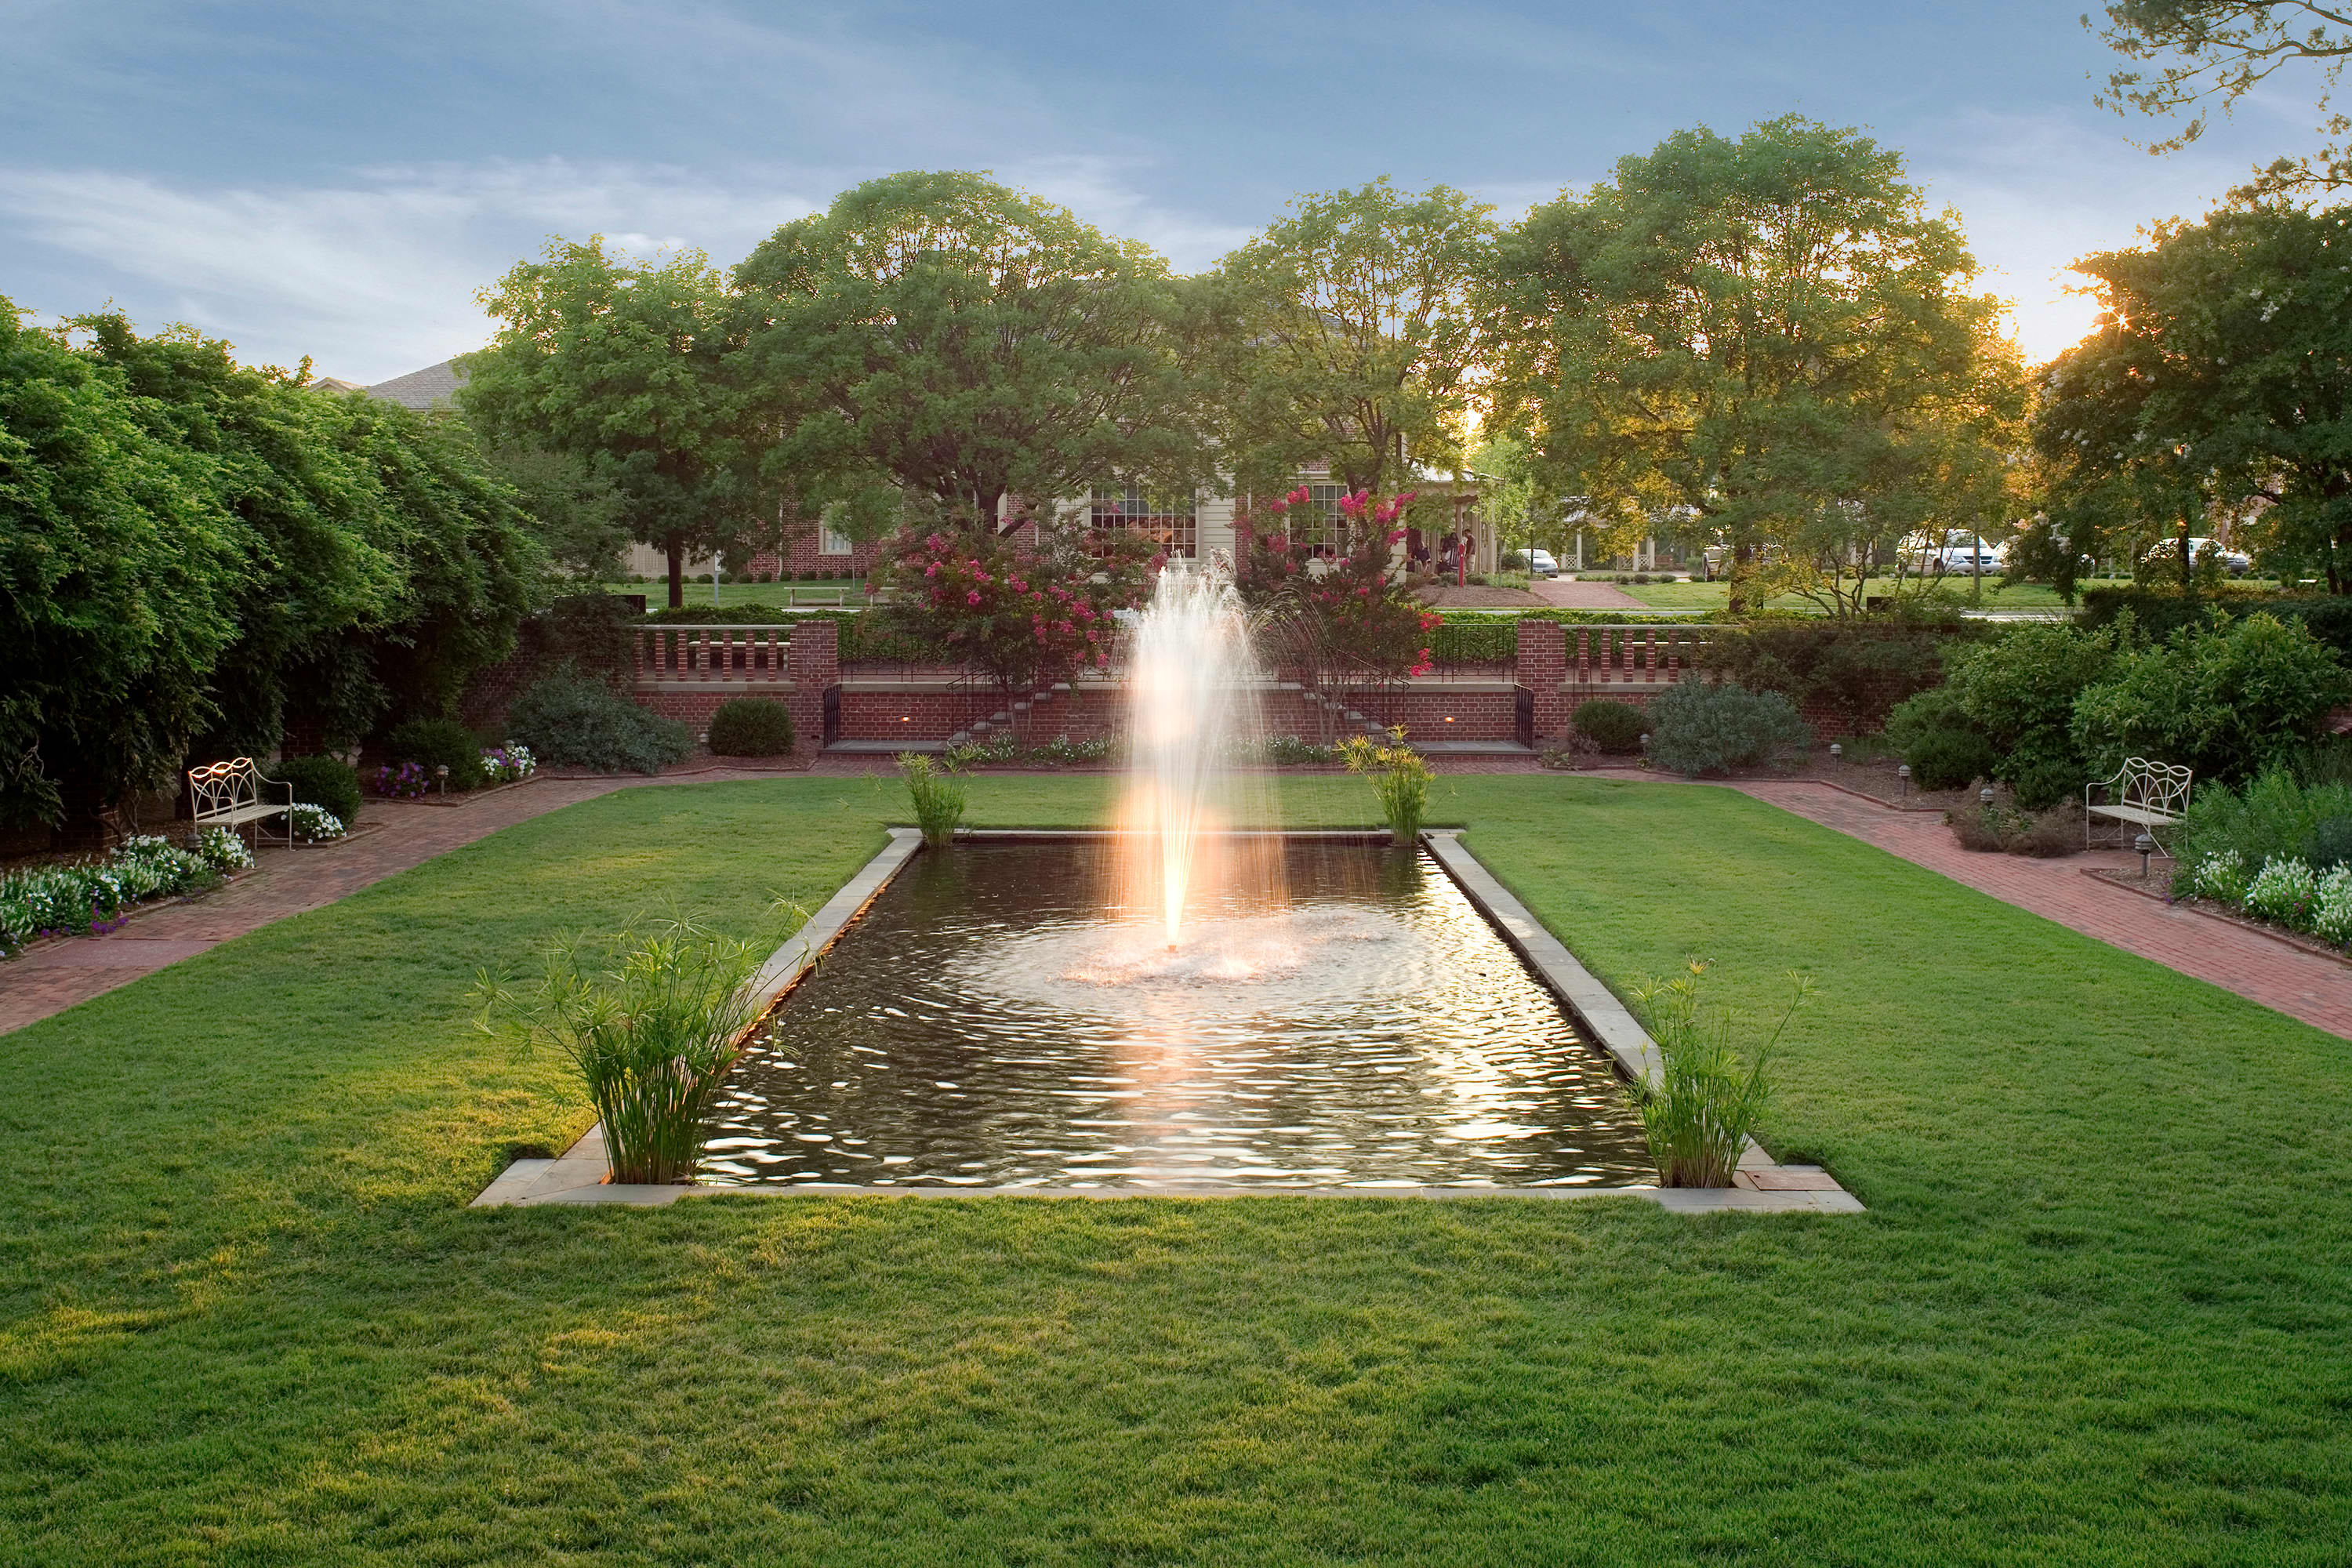 The Fountain Garden at sunset